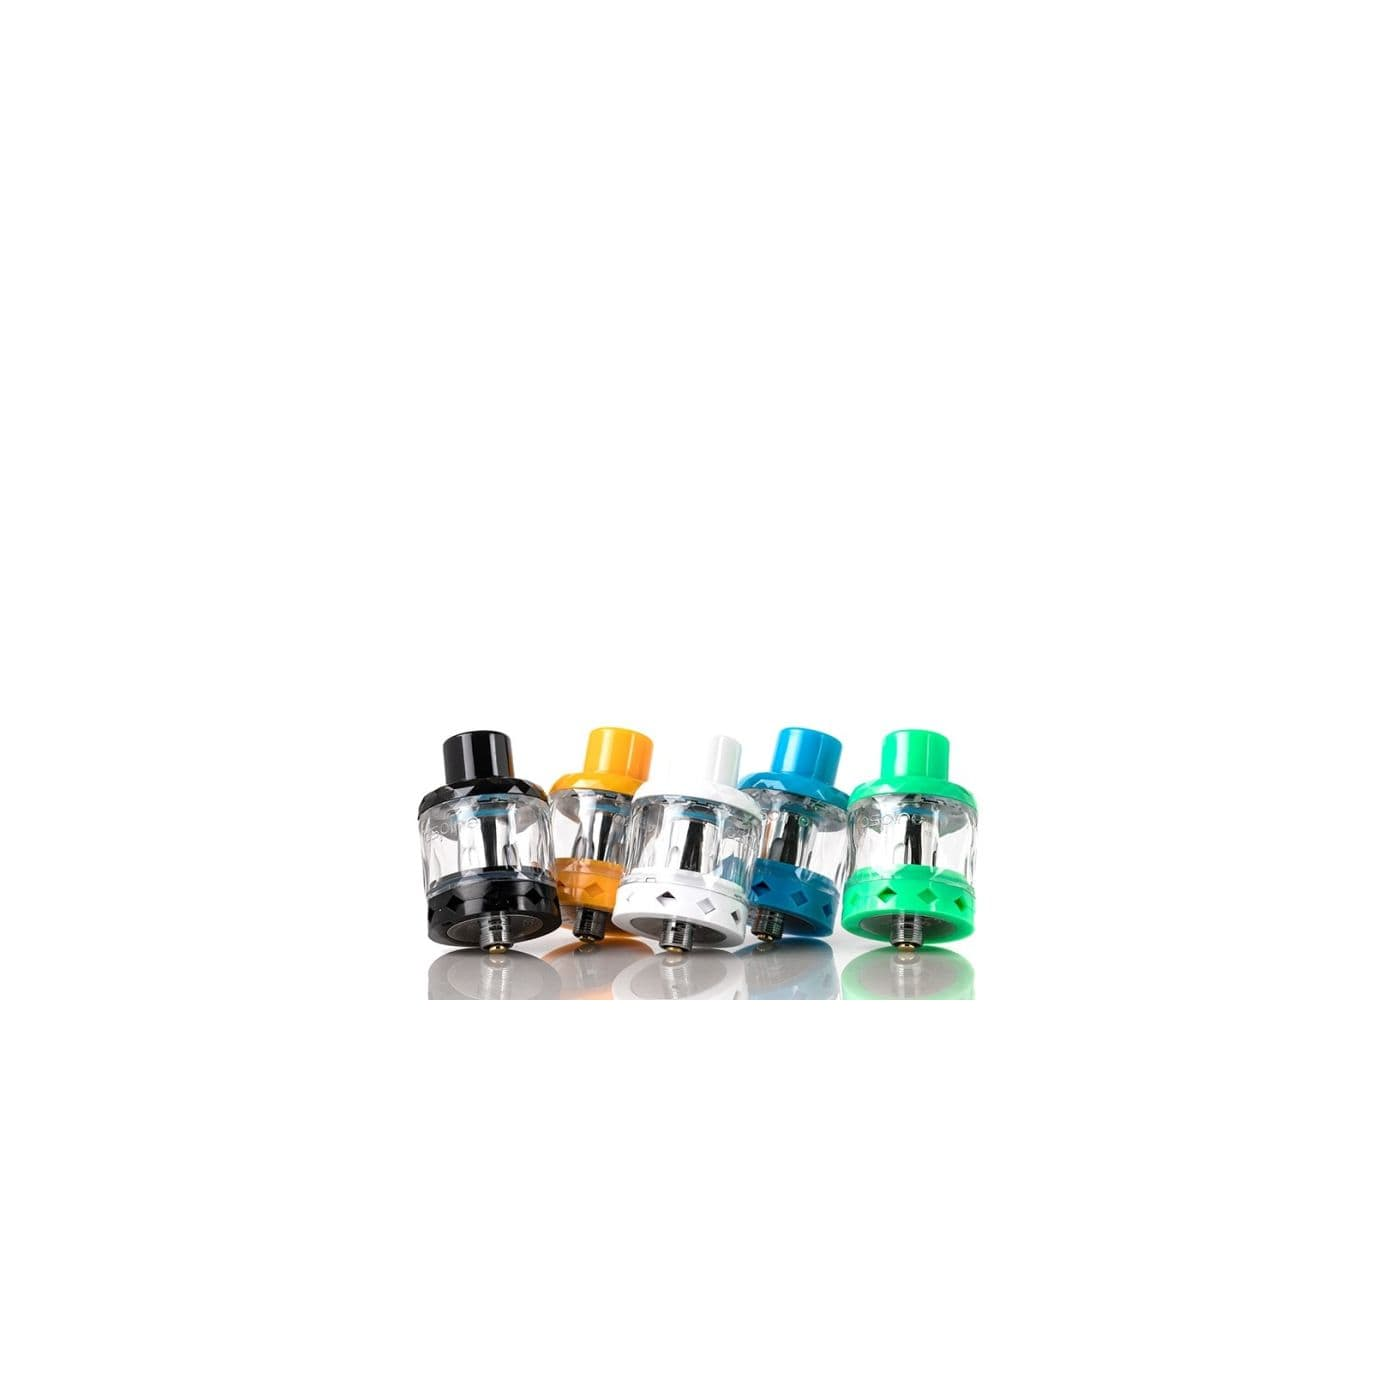 Aspire Cleito Shot Disposable Tank - 3 Pack